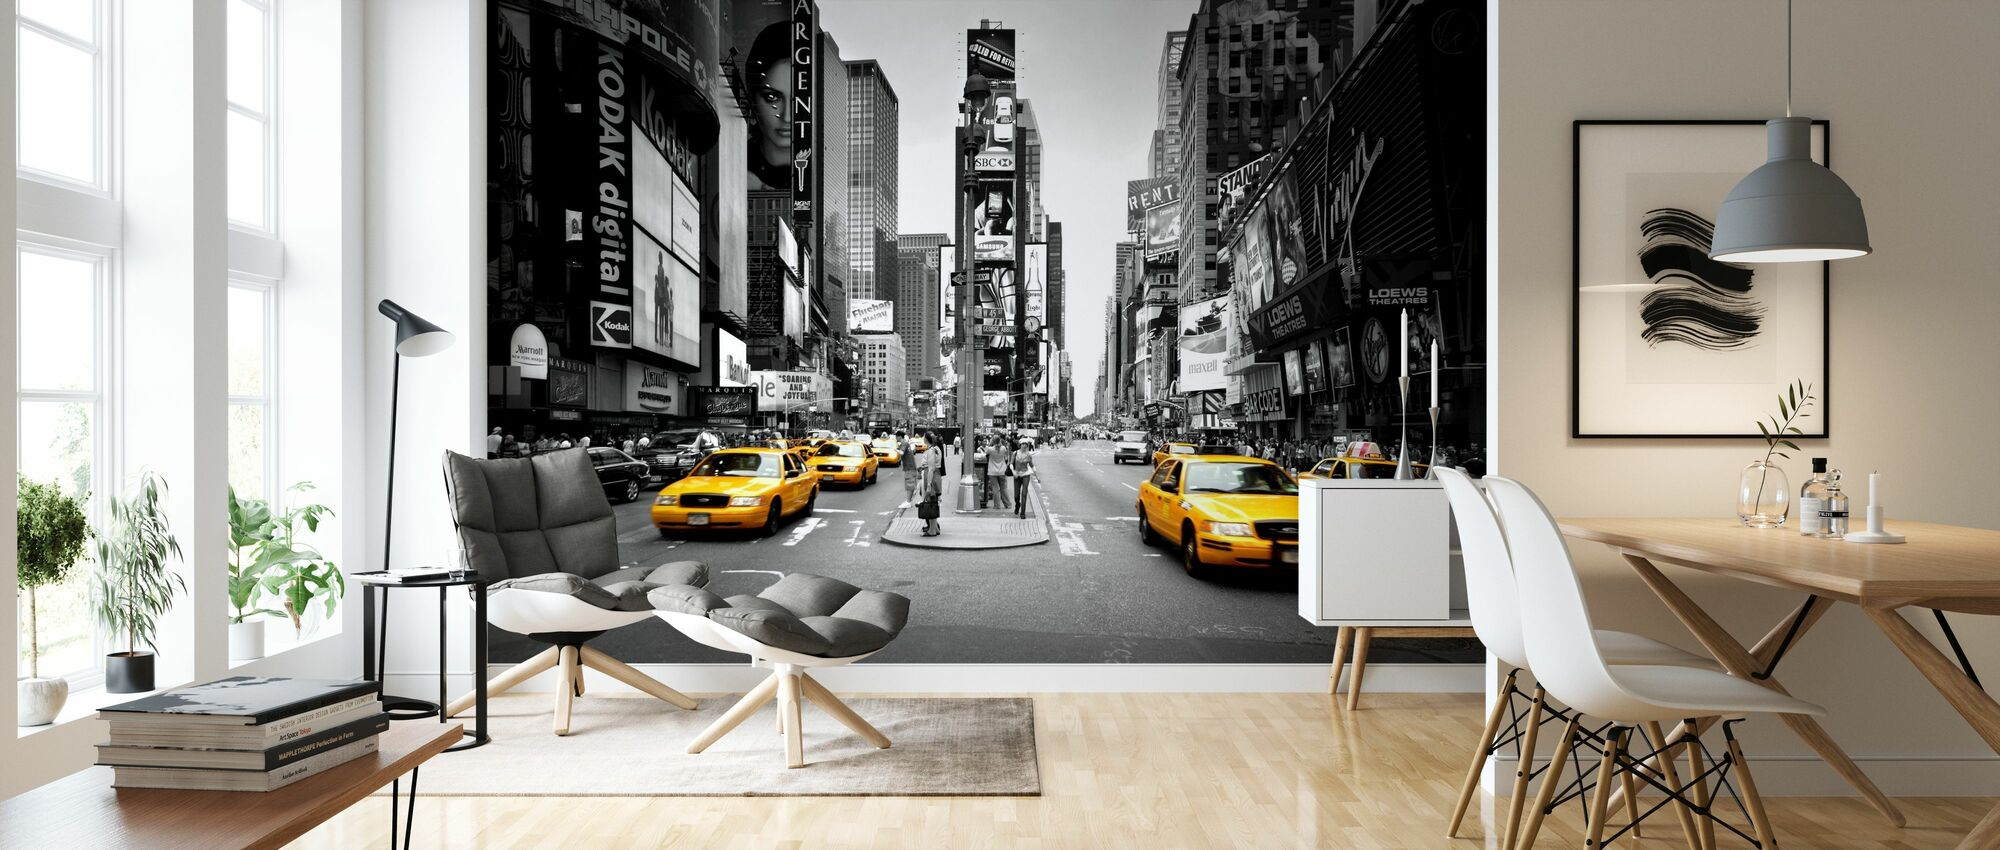 Times Square, New York, USA - Wallpaper - Living Room